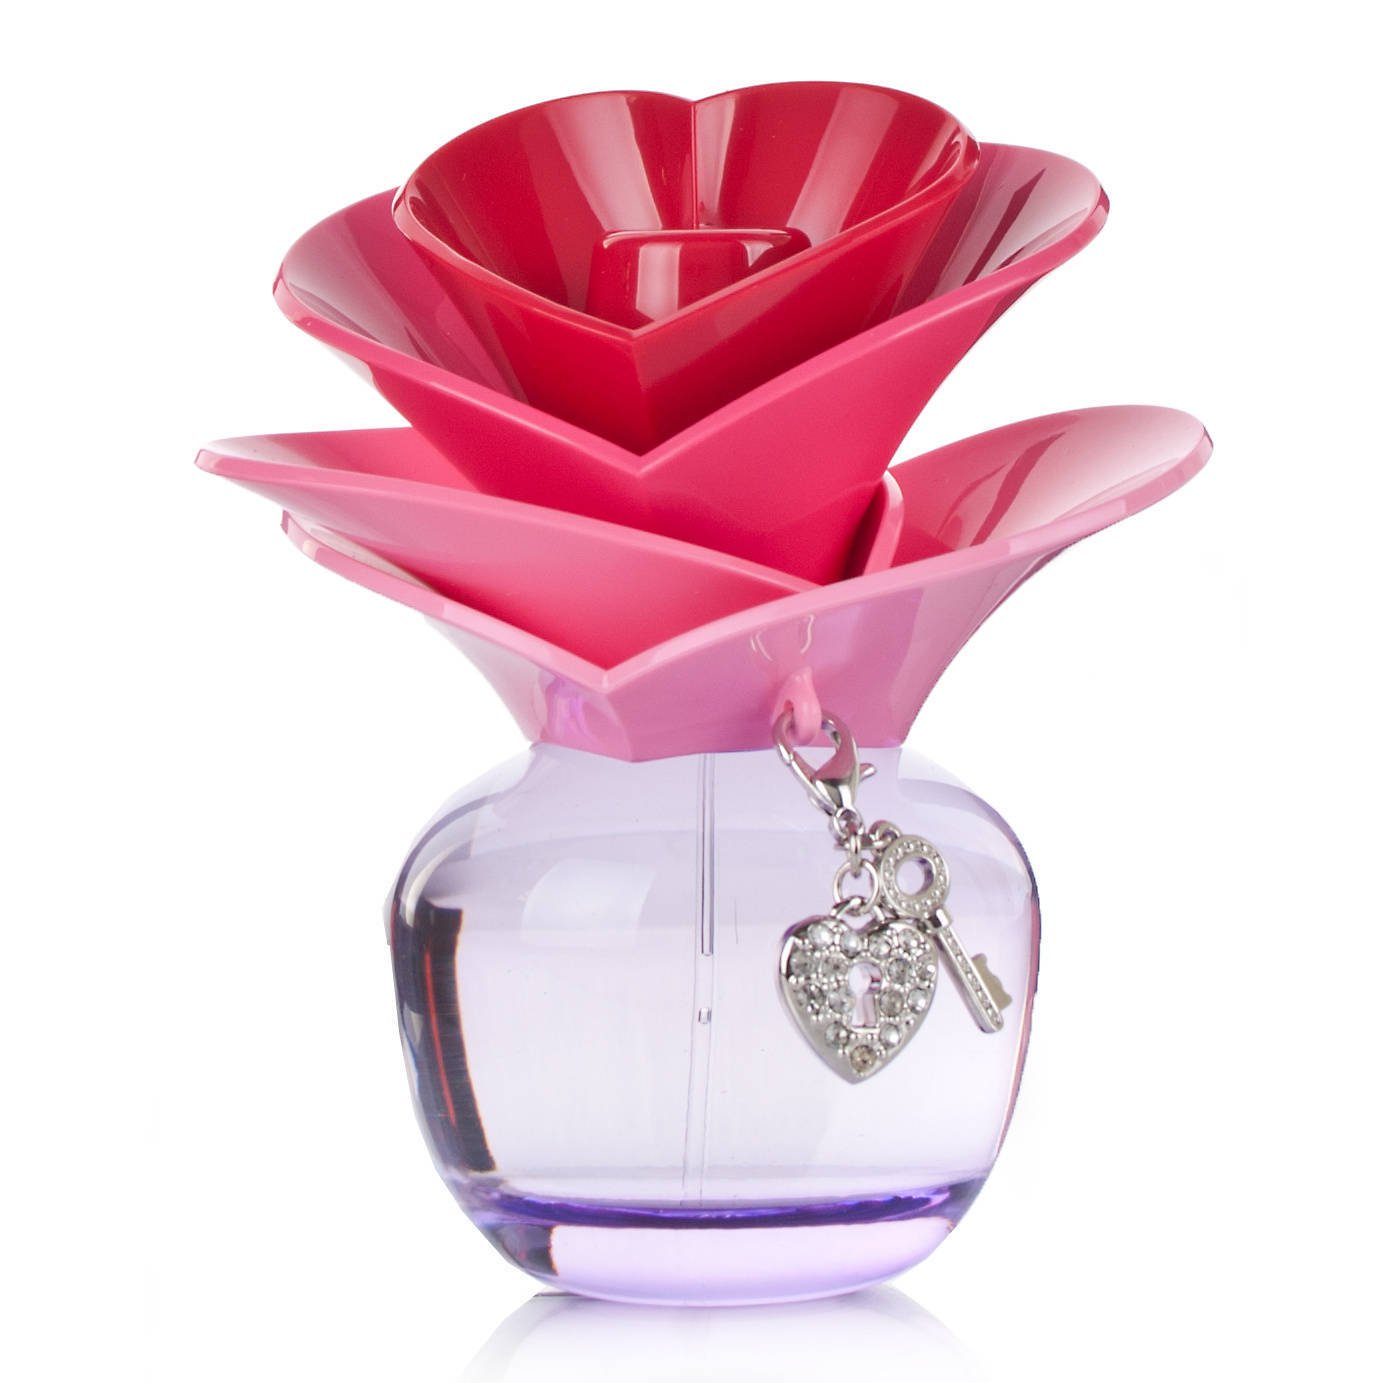 Someday - 50 ml Edp